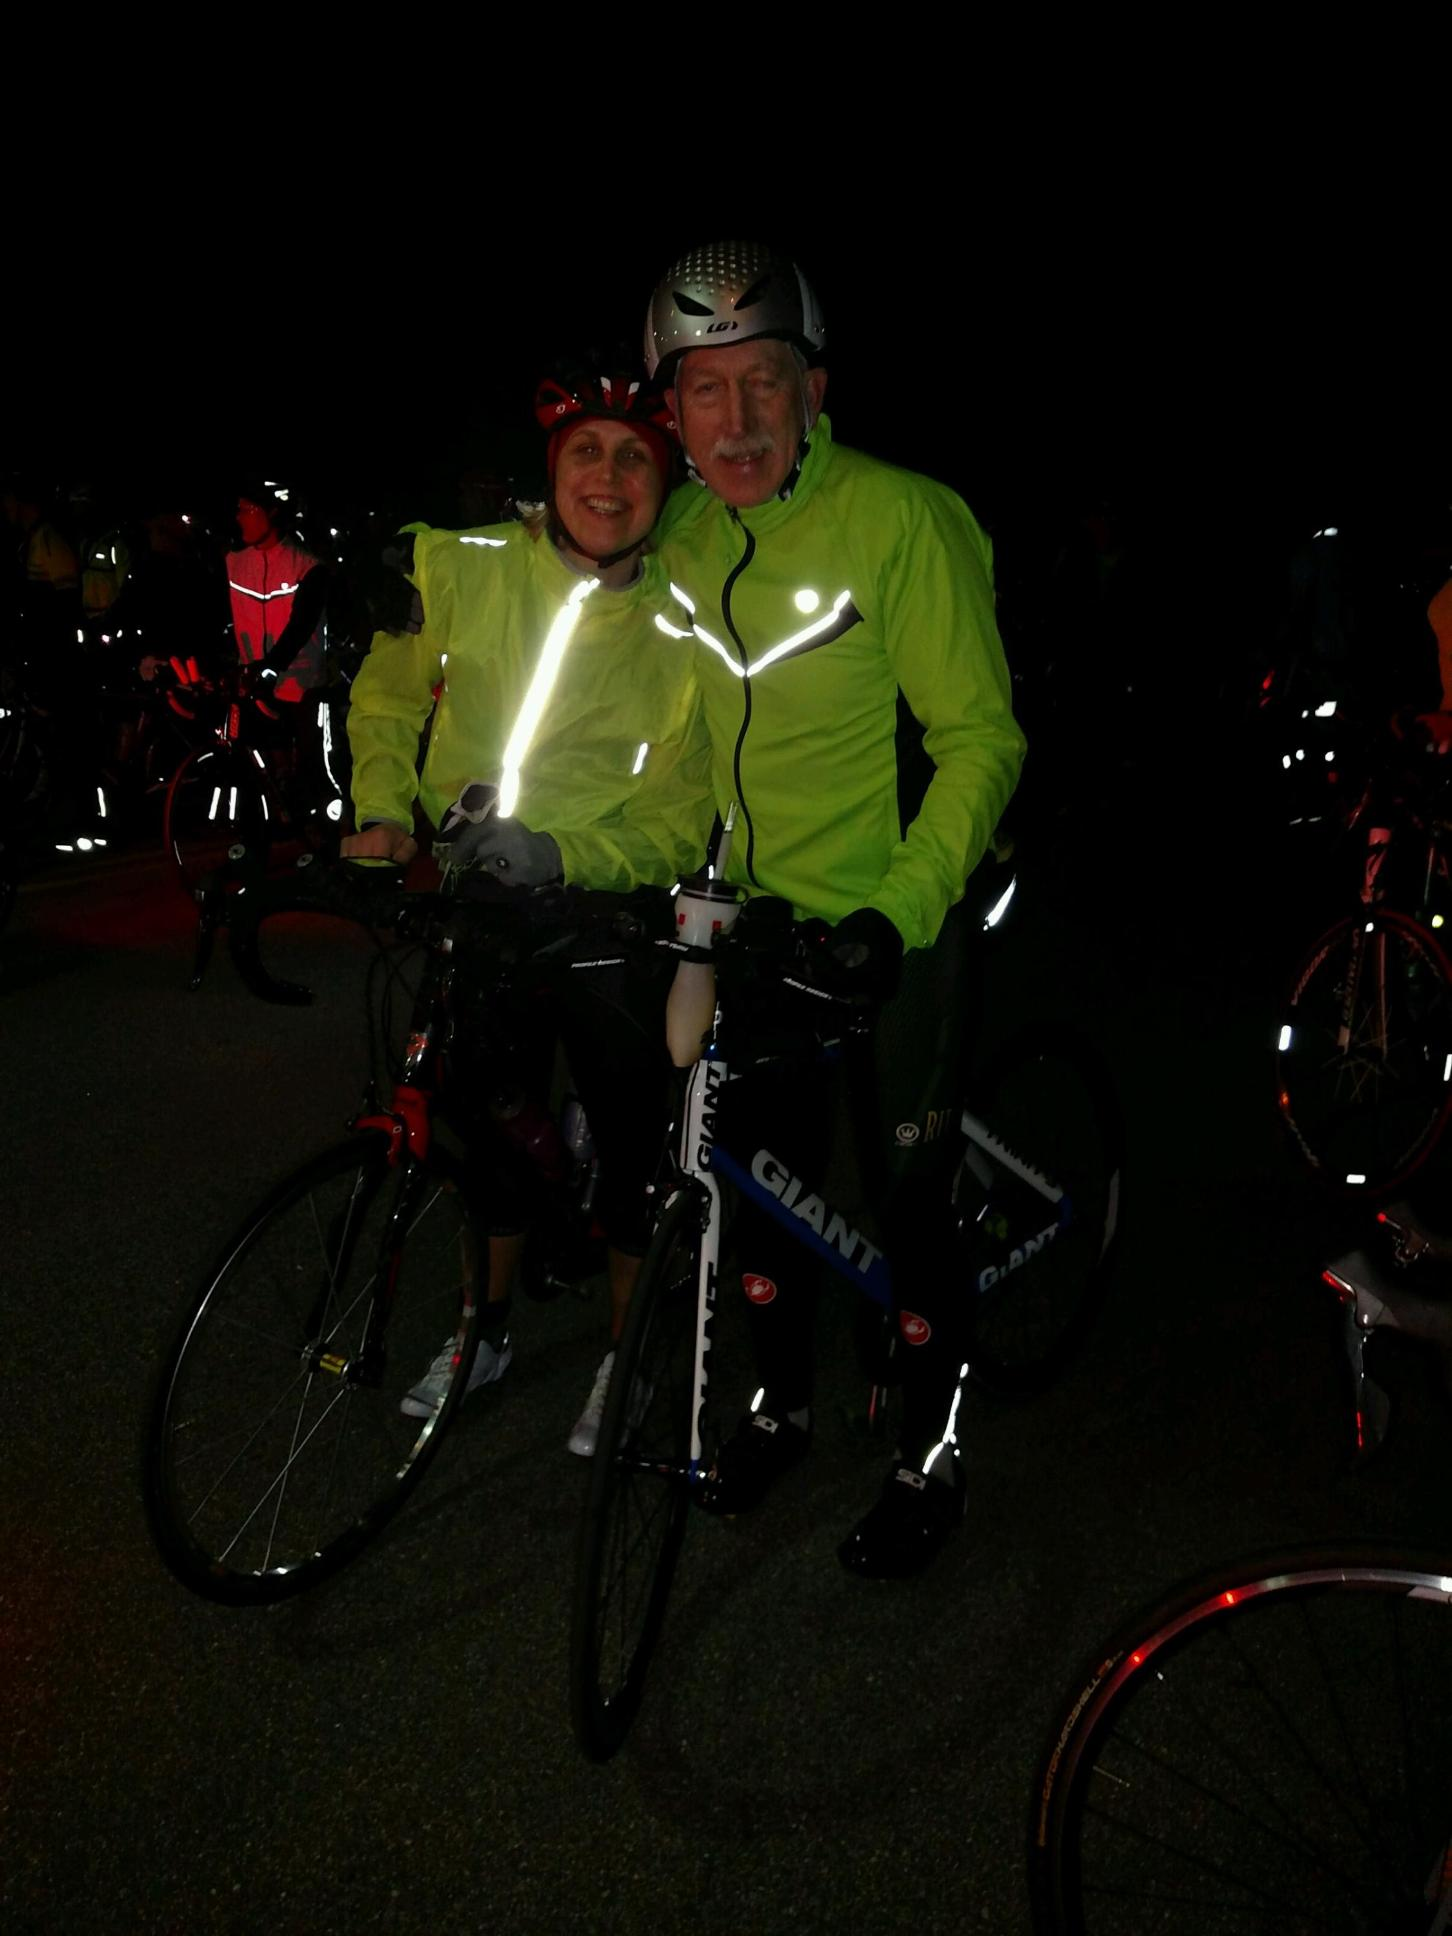 Cassie and Wally before the start of the Florida 12 Sebring bike race